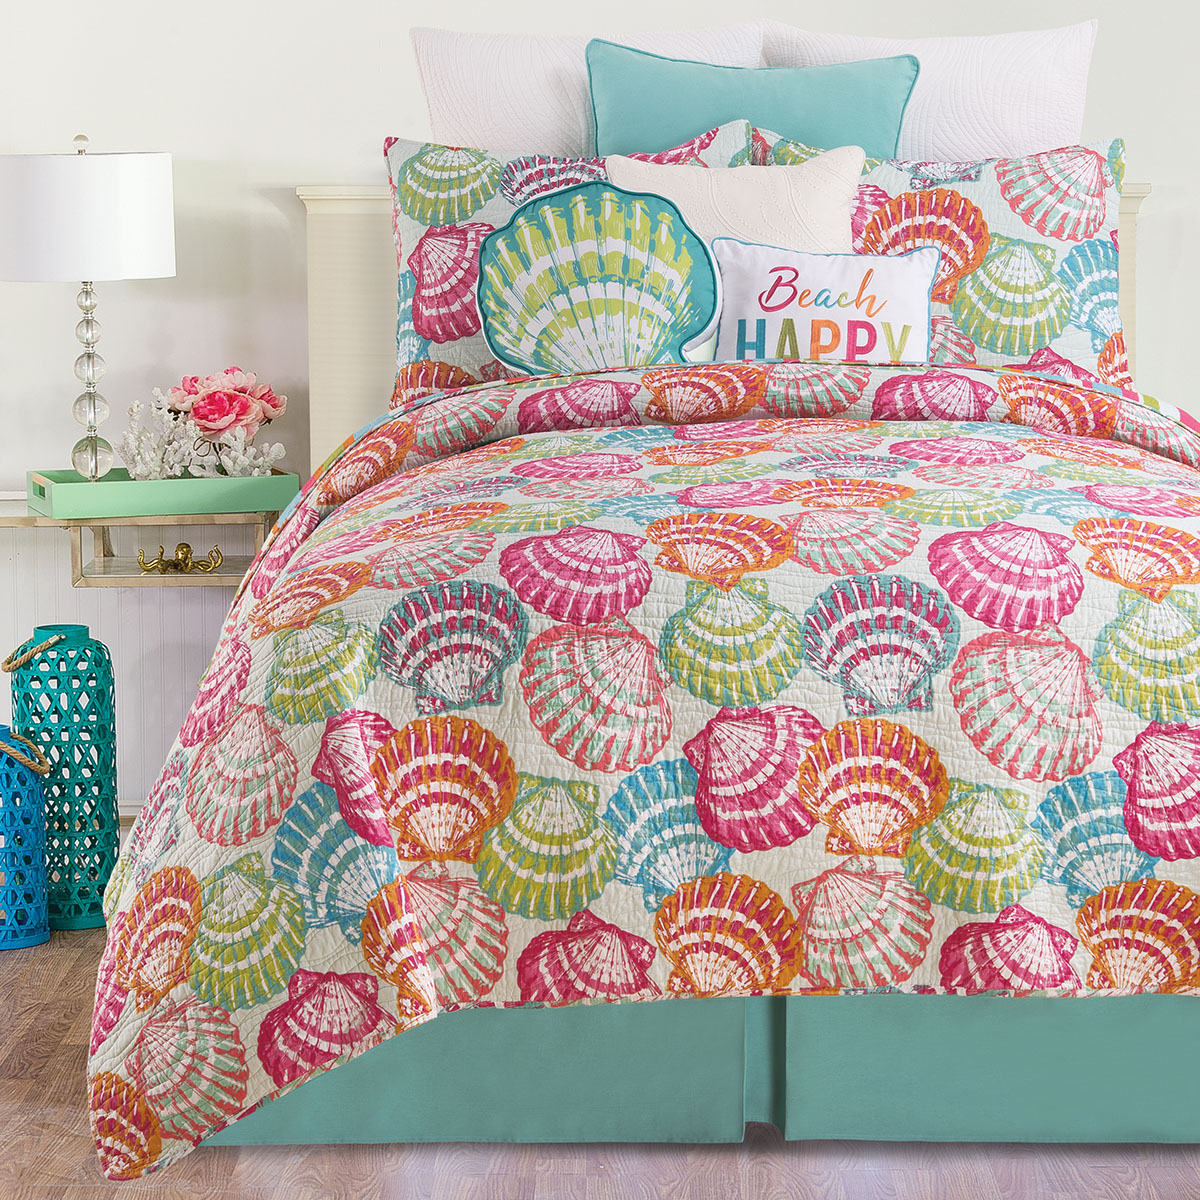 C&F Home_Coastal_Bedding_Quilts.jpg